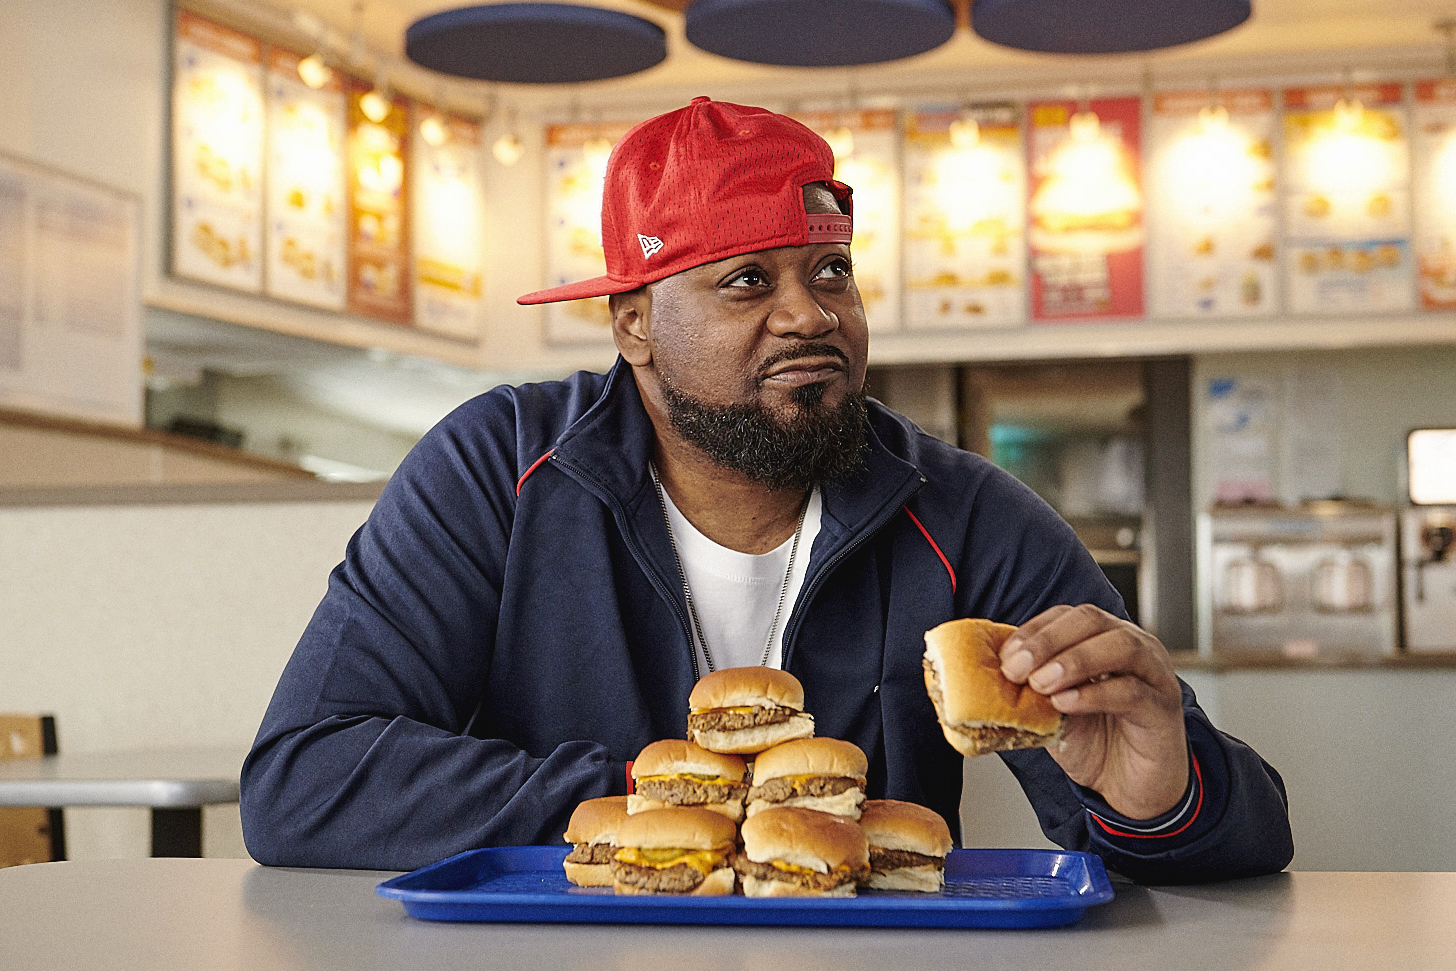 Ghostface eating Impossible Sliders at White Castle, photo credit: Impossible Foods